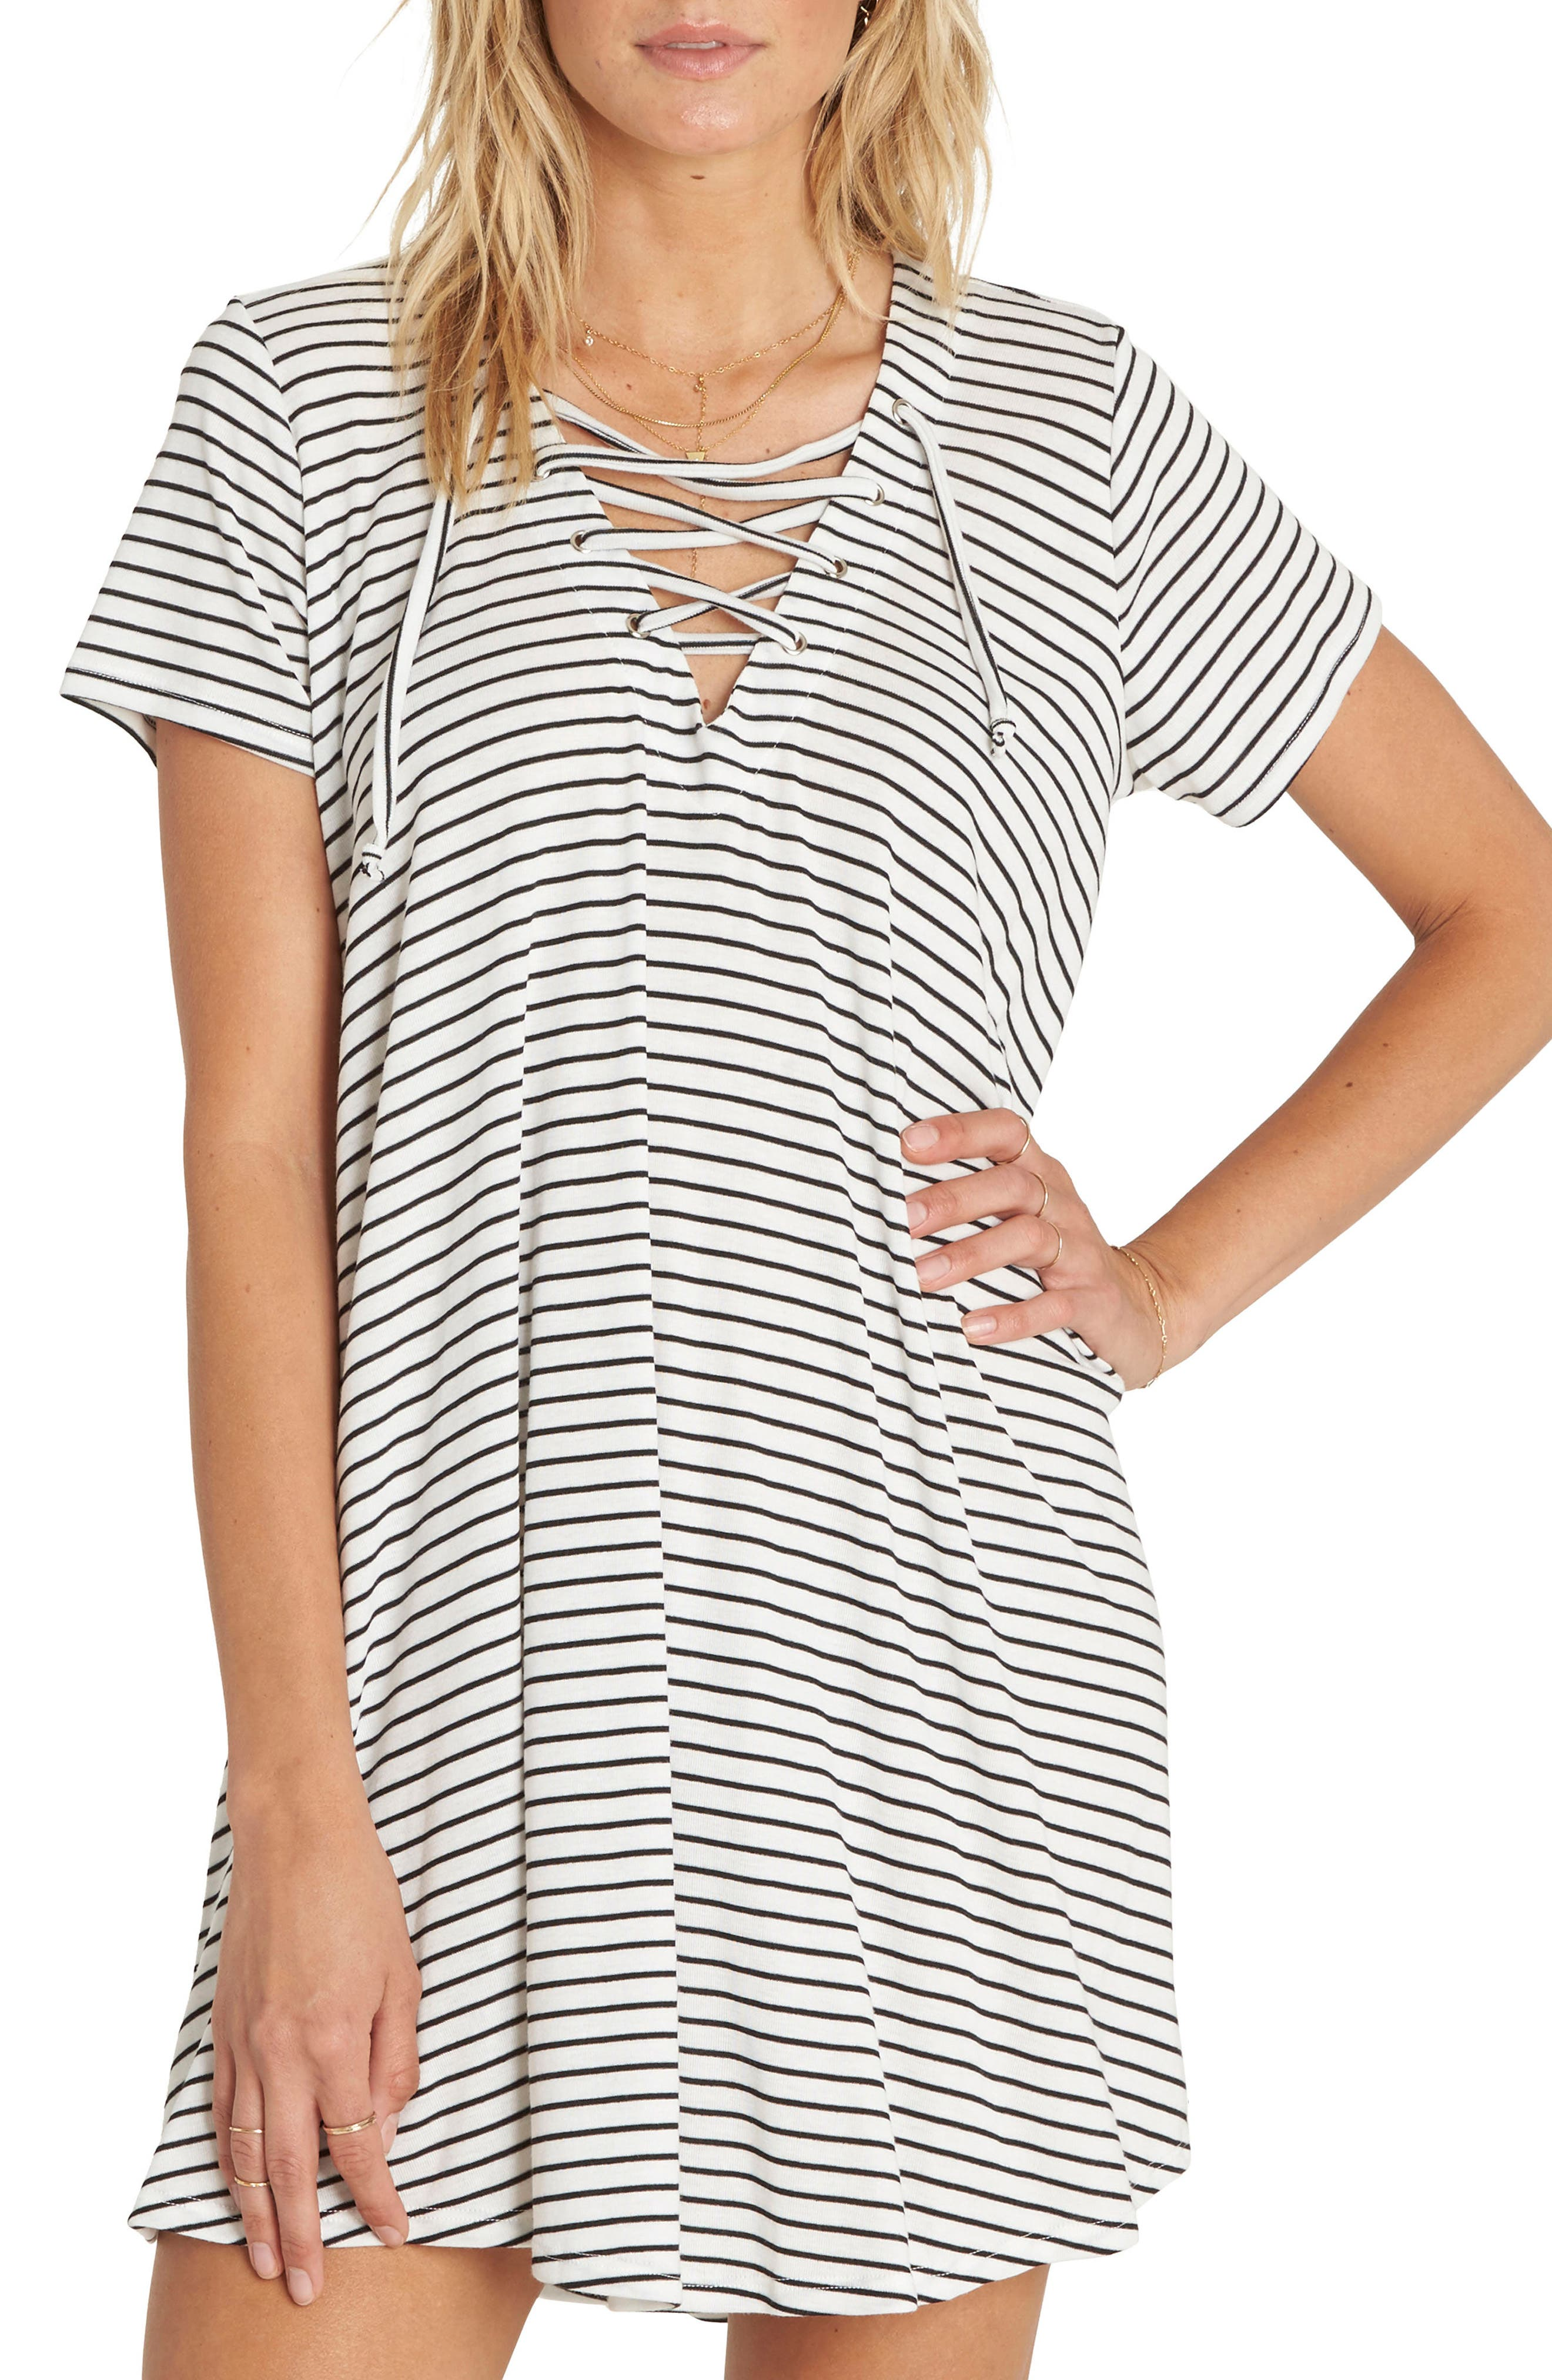 Long Ago Lace-Up T-Shirt Dress,                         Main,                         color, Cool Wip